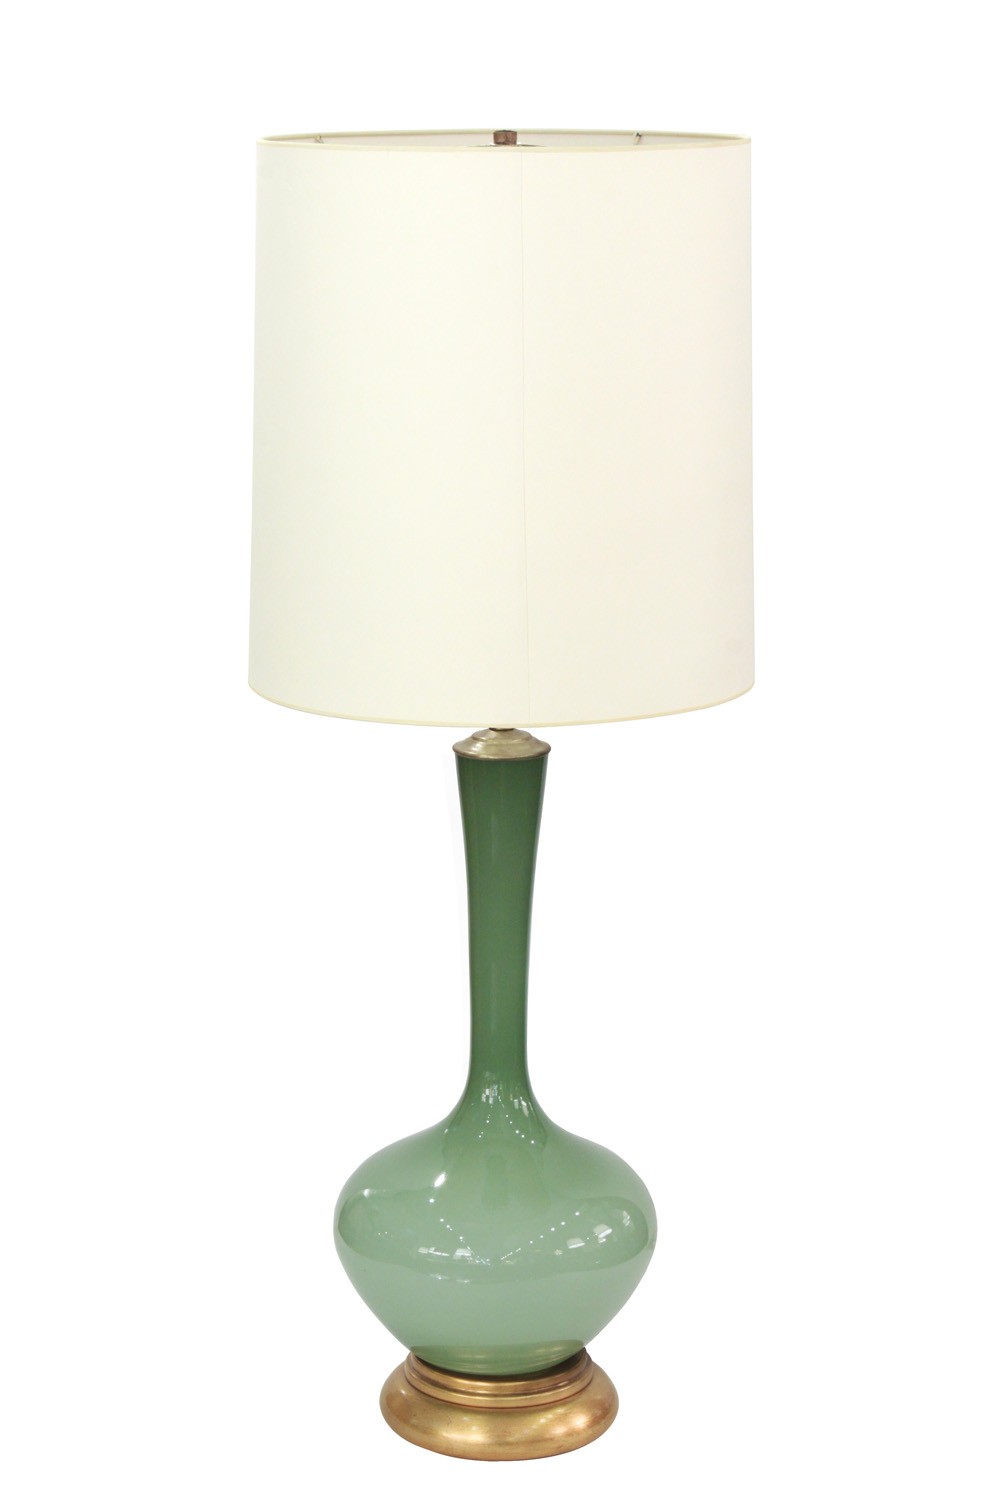 Marbro 55 green glass large tablelamp162 hires.jpg